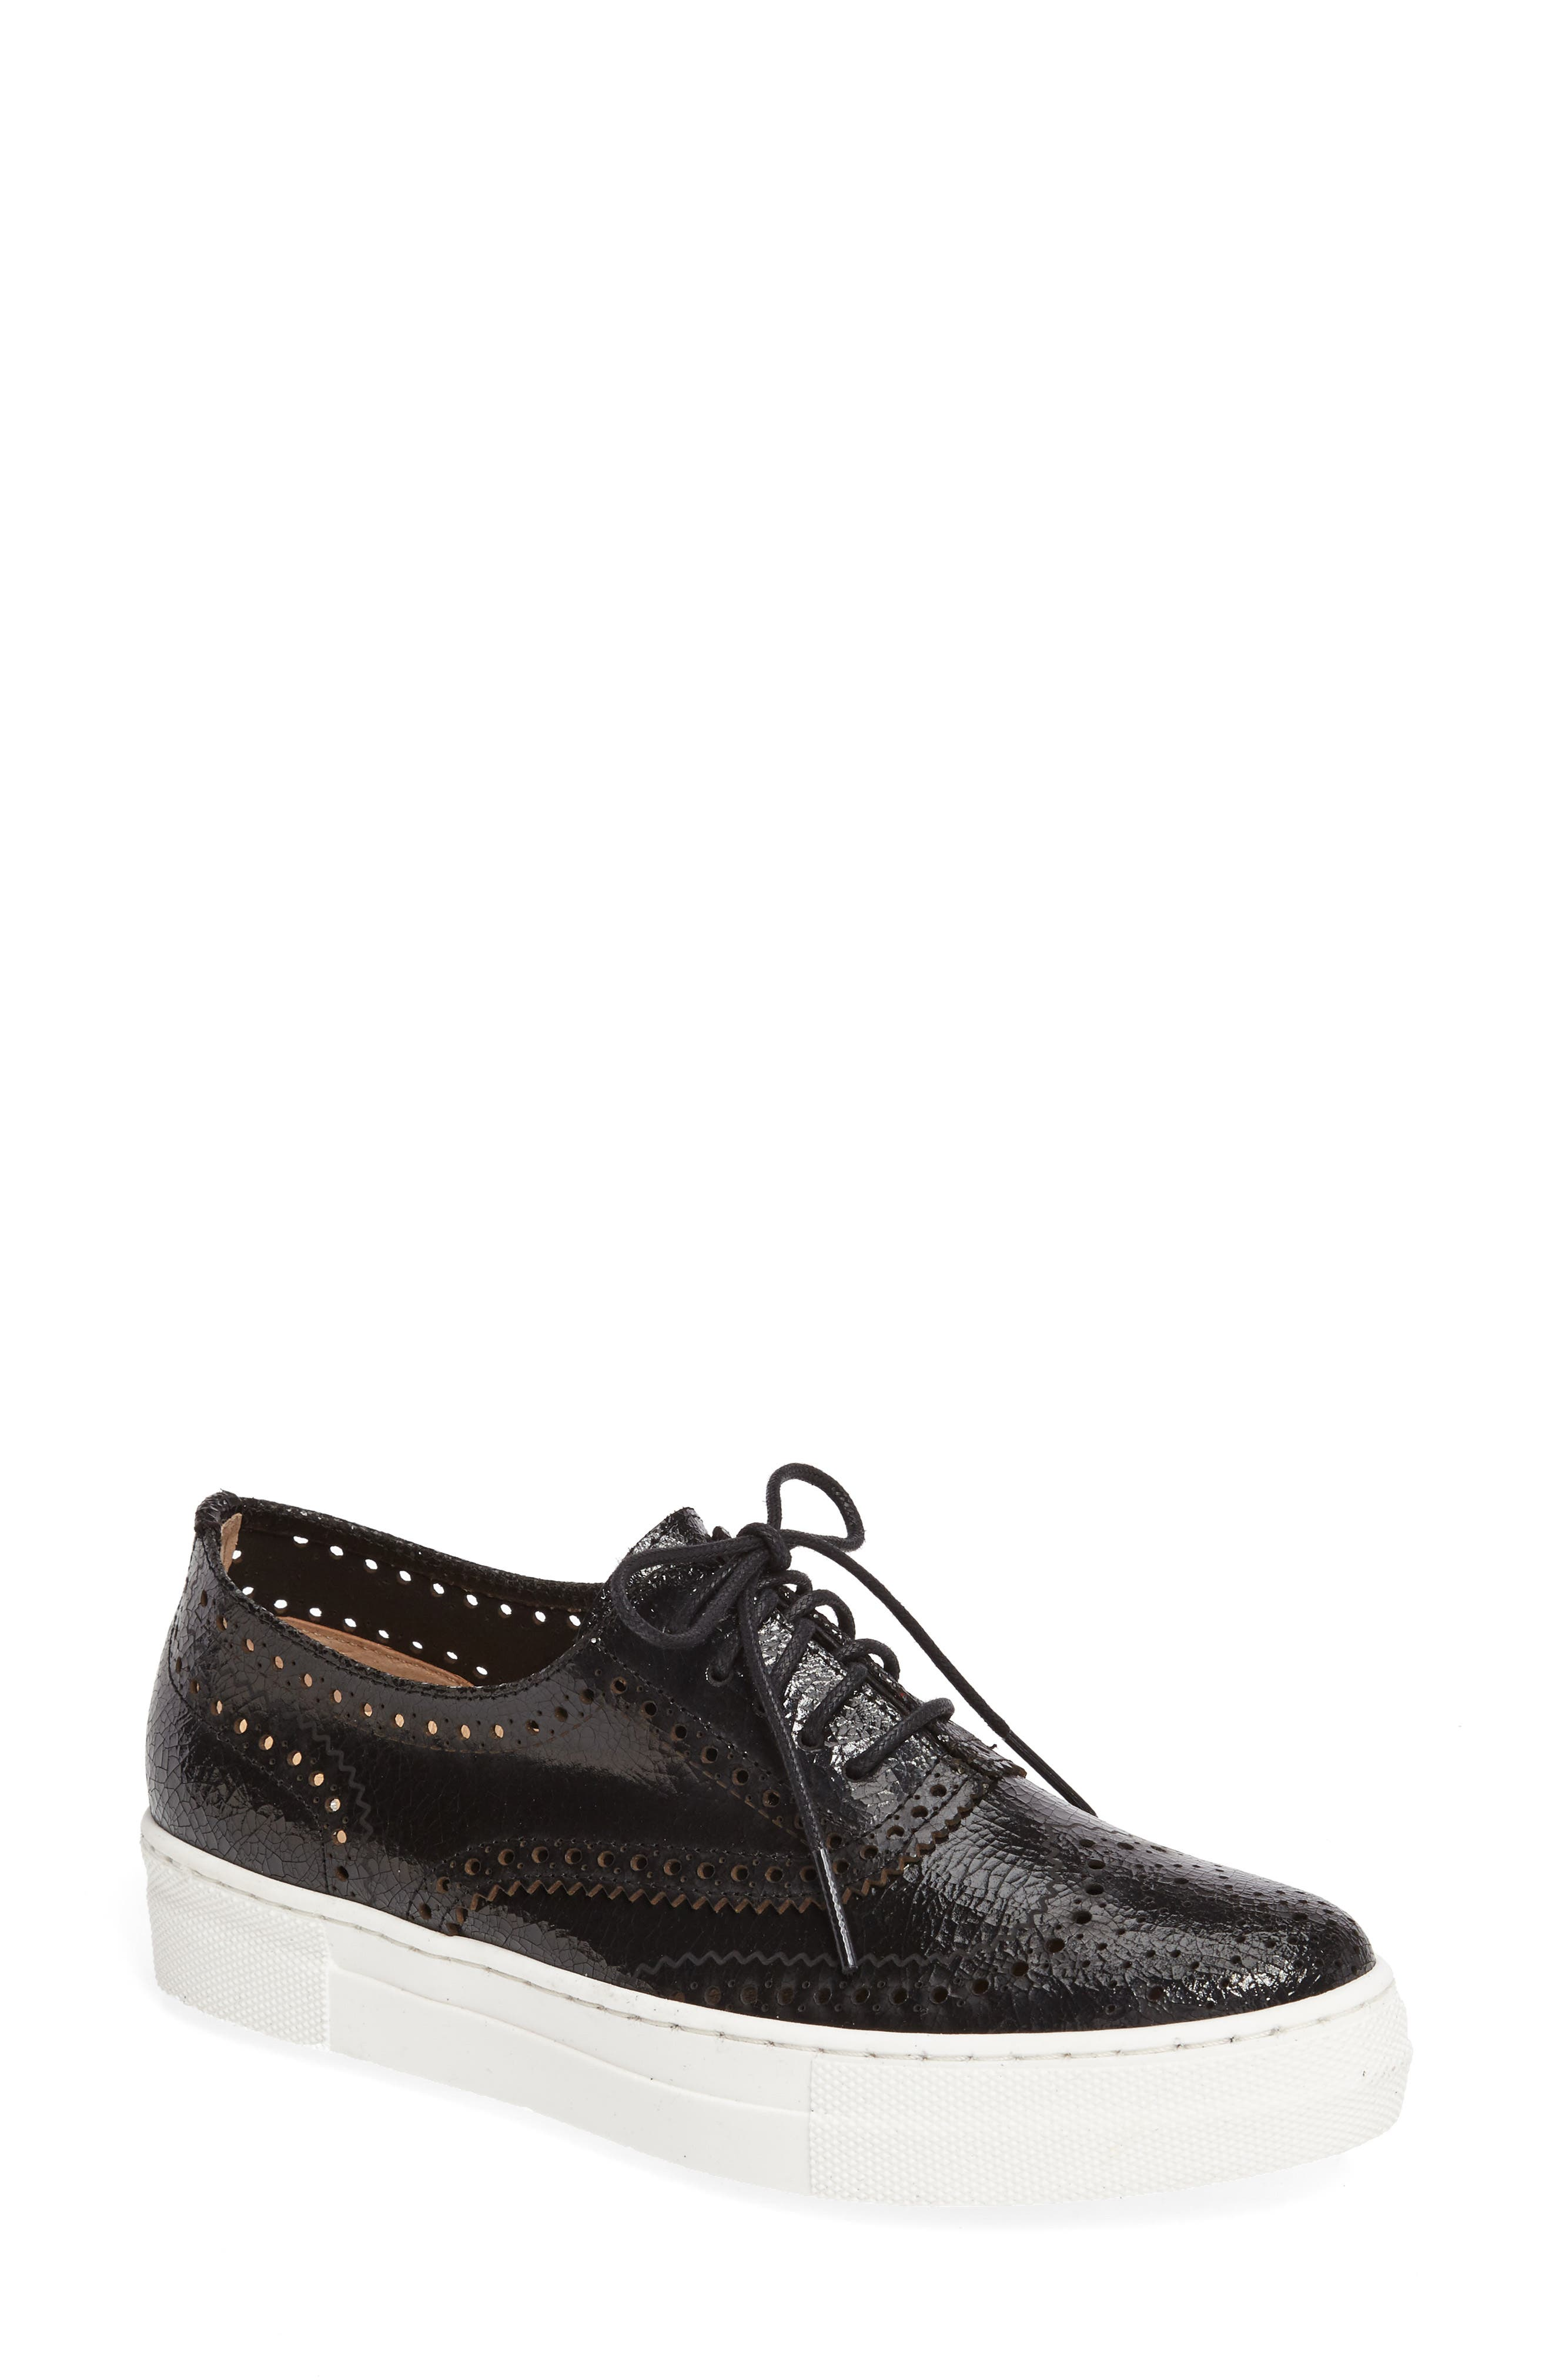 Main Image - Shellys London Kimmie Perforated Platform Sneaker (Women)